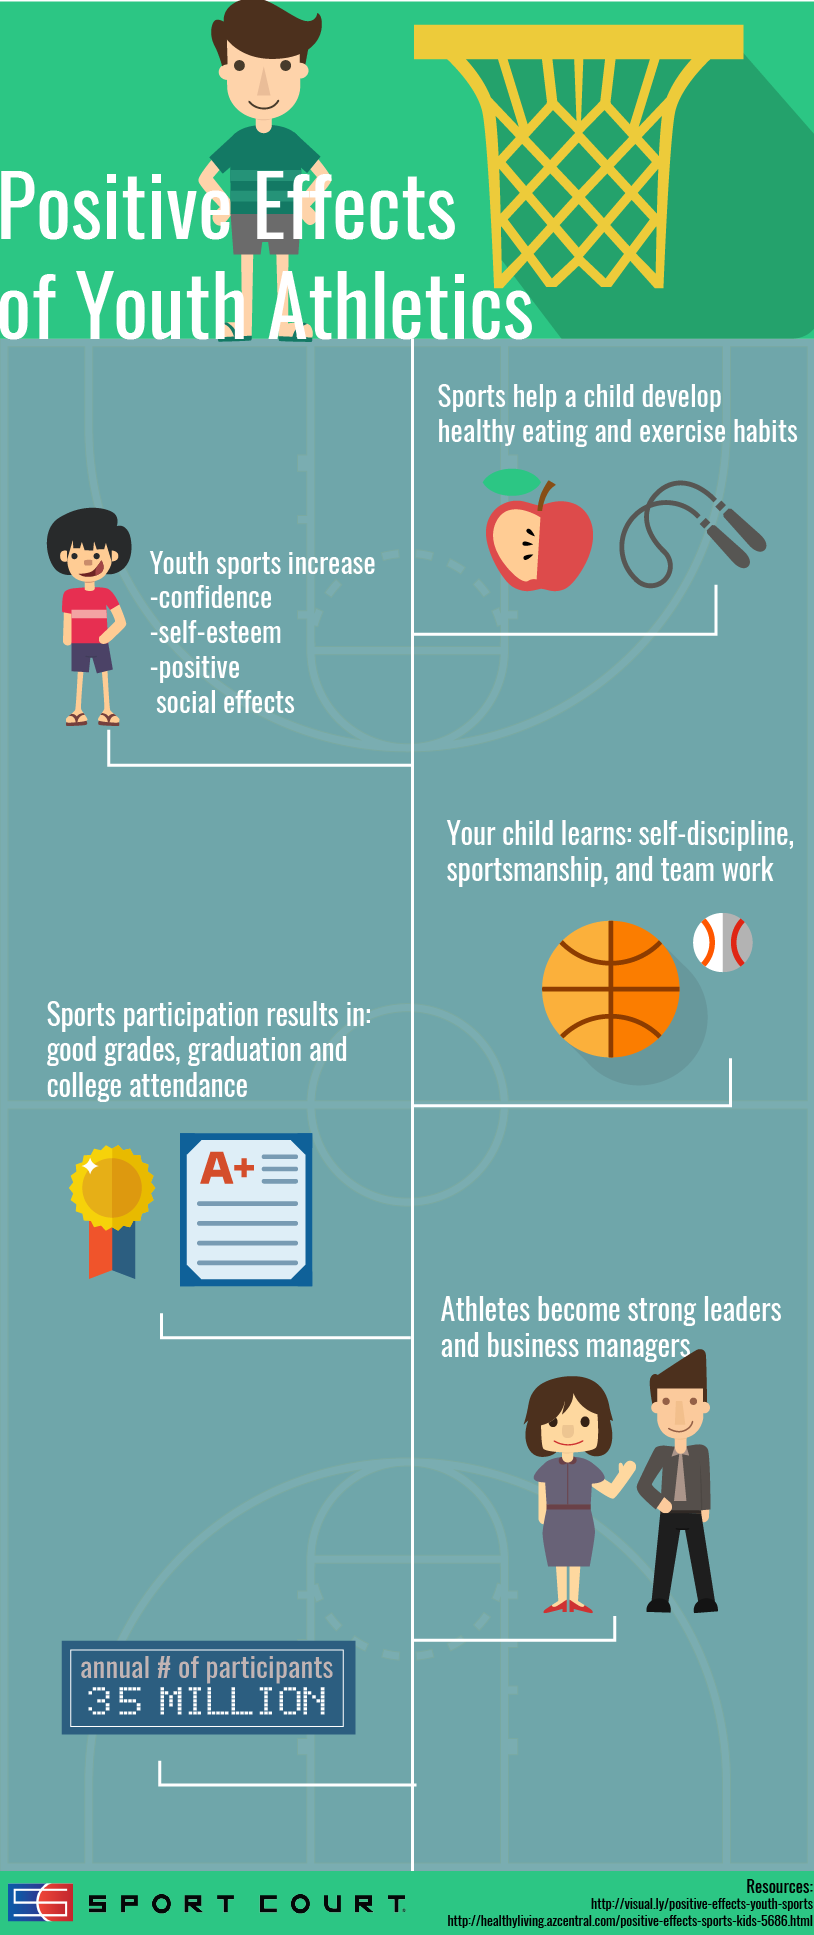 The Positive Effects of Youth Athletics